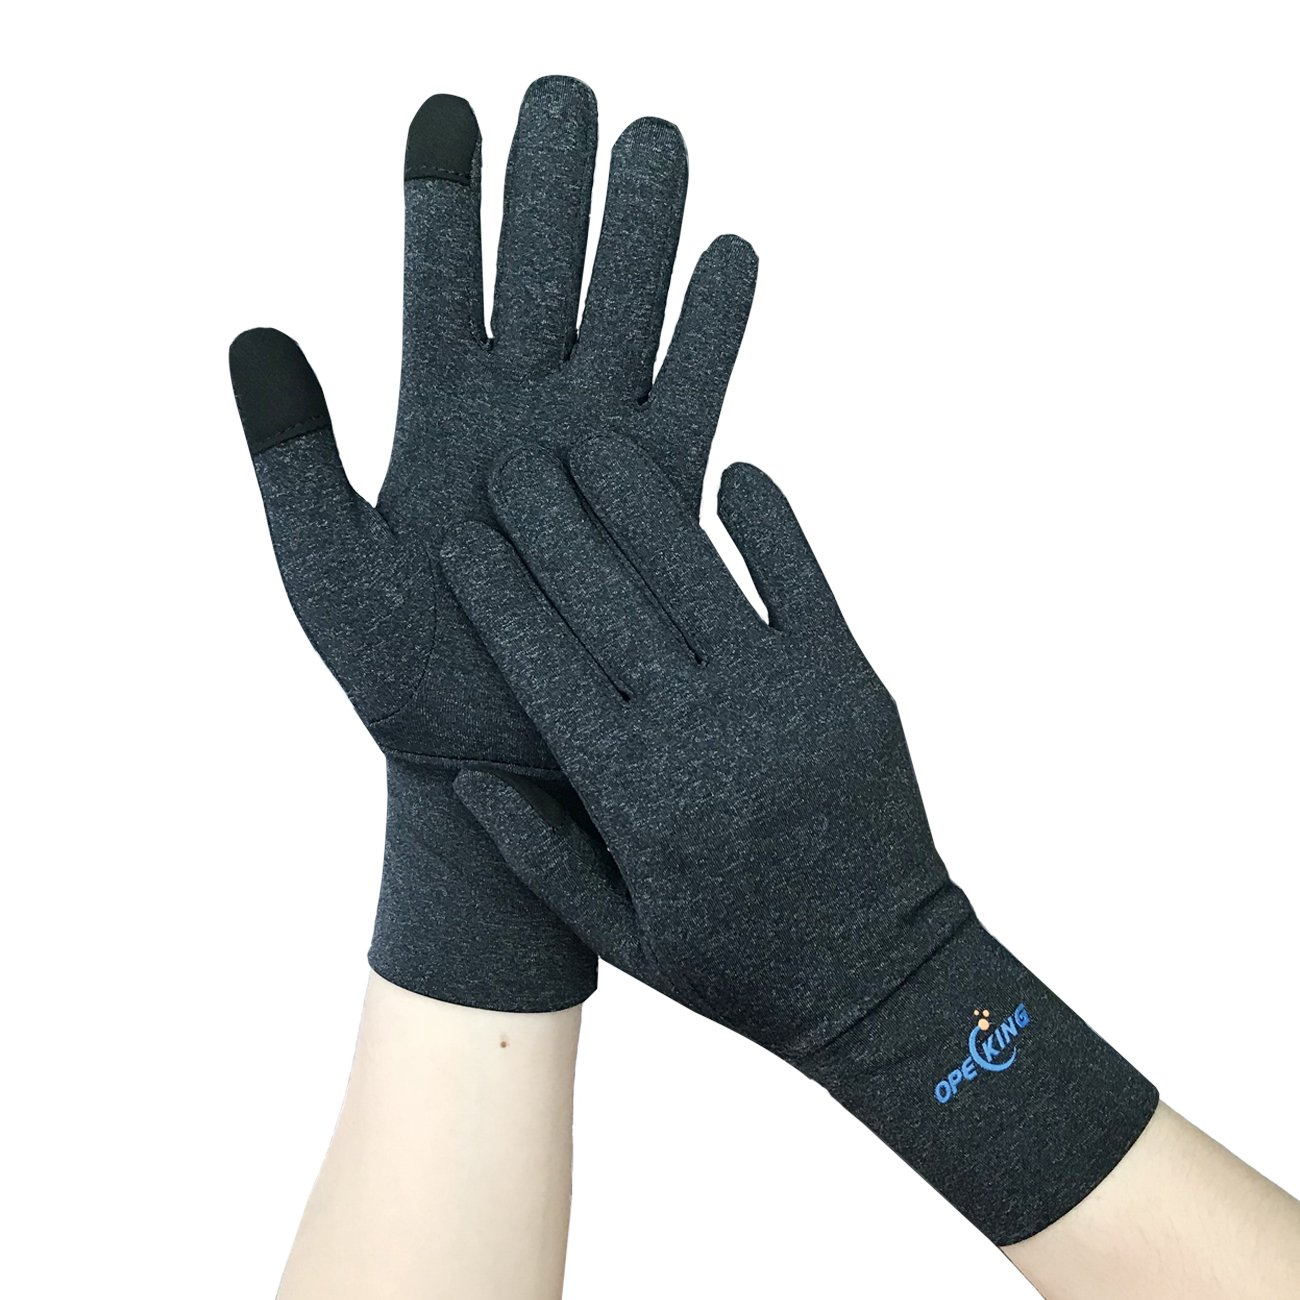 Compression Gloves Full Finger, Arthritis Gloves with Touch Screen for Typing, Relieve Joint Pain Symptoms Raynauds Disease & Carpal Tunnel - Medium